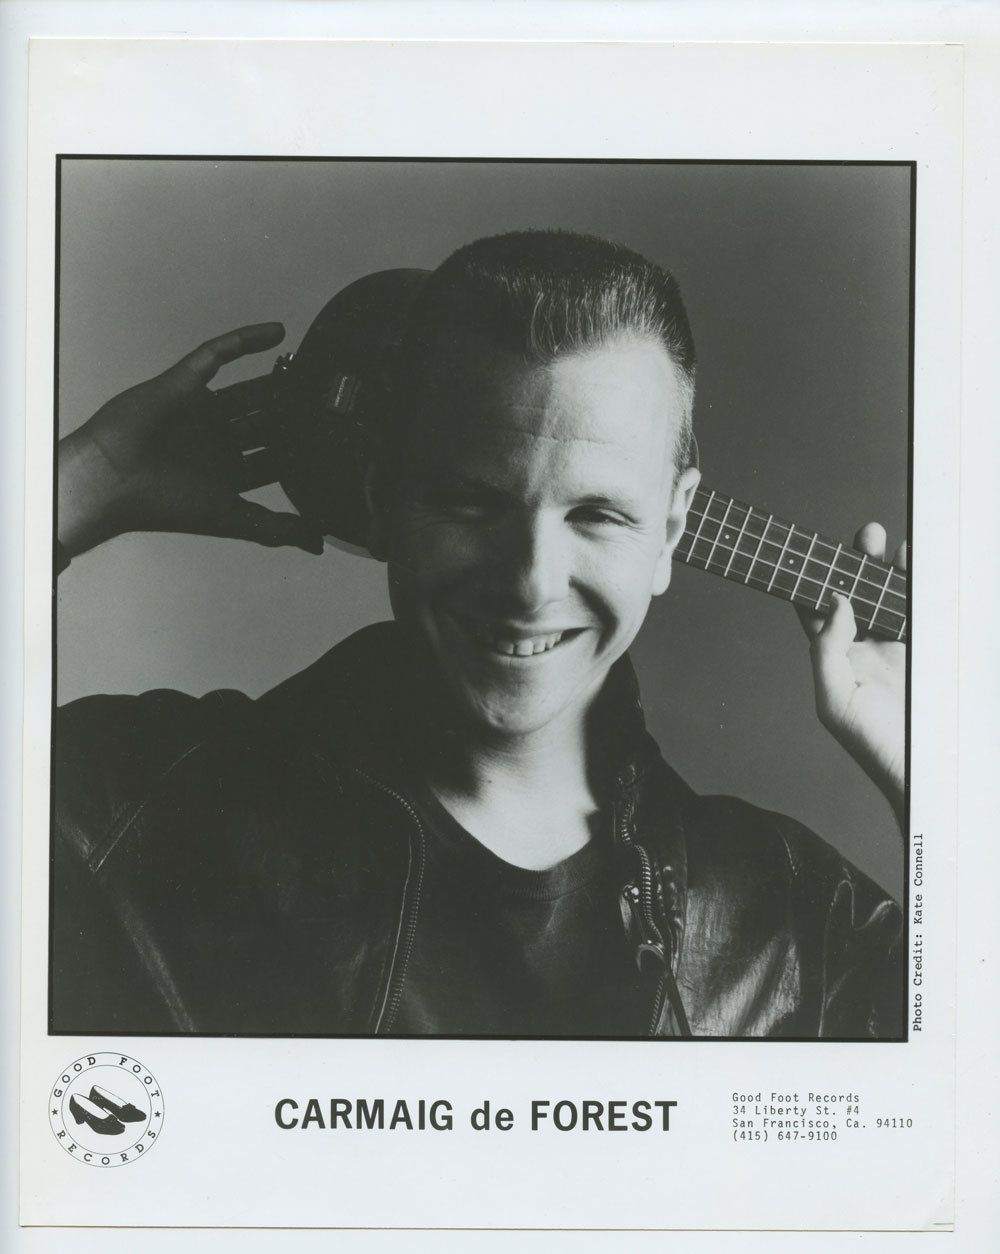 Carmaig de Forest Photo 1987 Publicity Promo Good Foot Records